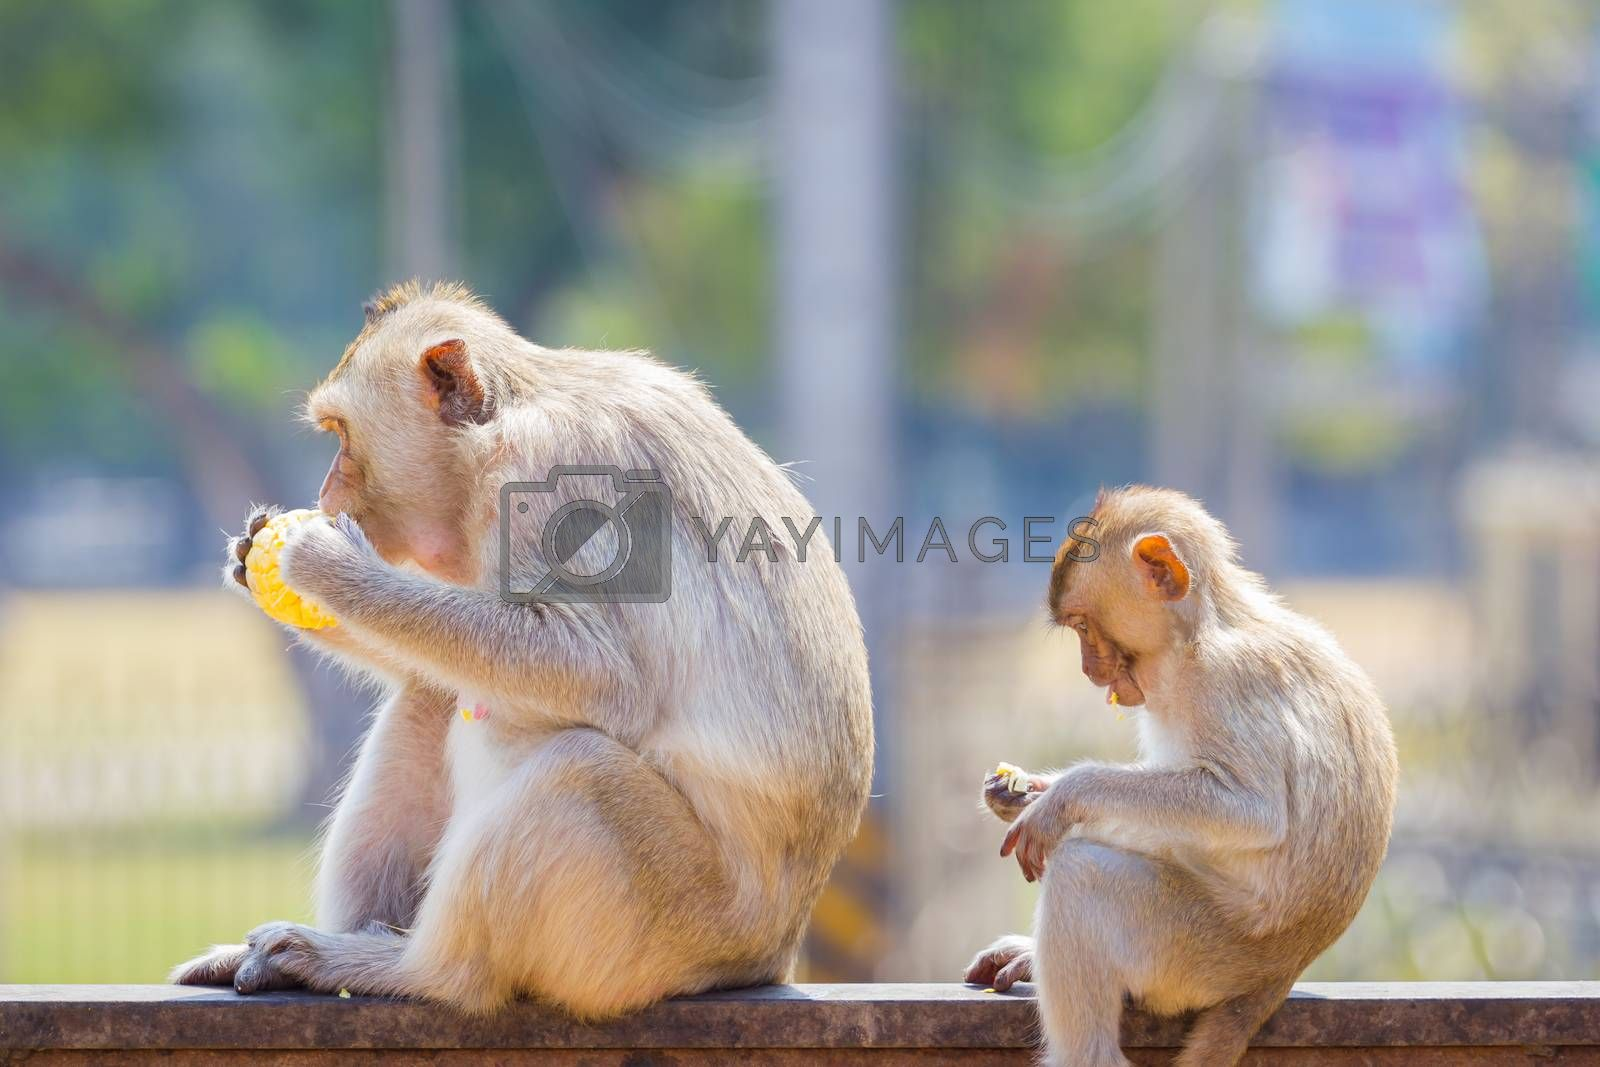 mother and baby monkey eating fresh corn on a rusty fence, shallow depth of field.